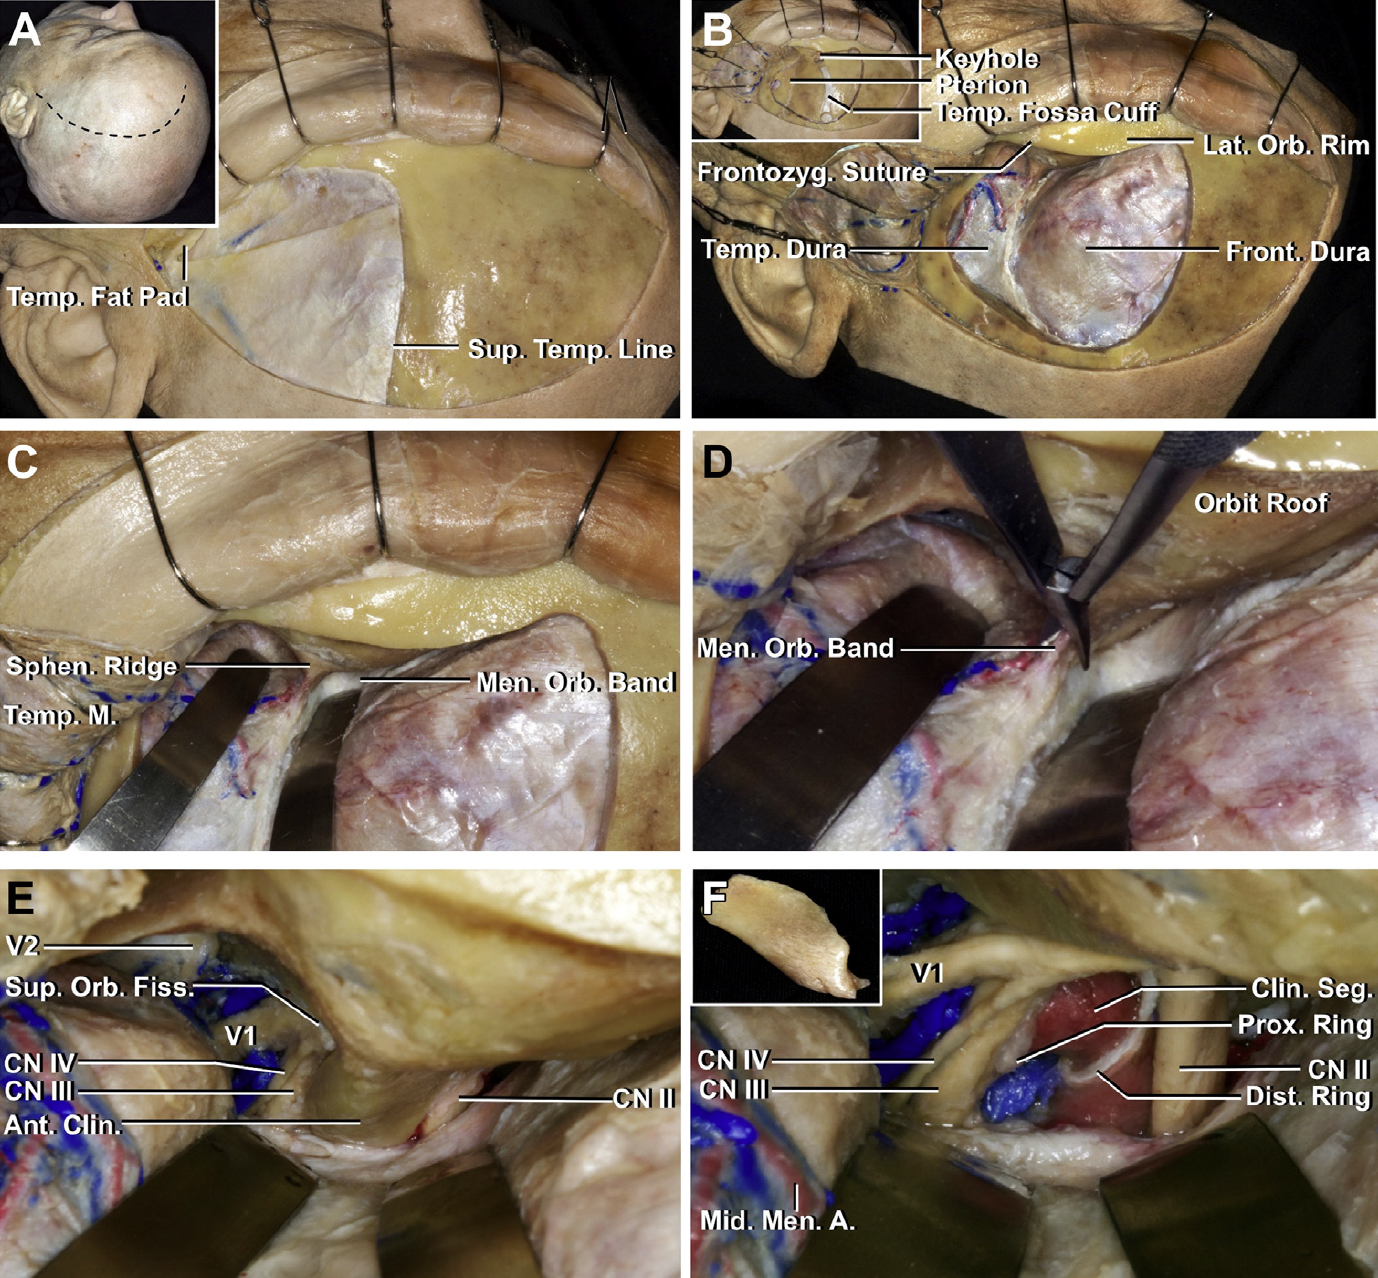 Figure 3. Surgical view of a stepwise left anterior clinoid removal and optic nerve decompression through the pterional approach. (A) The inset (upper left) show the position of the head and the site of the scalp incision. The scalp has been reflected using subgaleal dissection to expose the frontal bone and the upper part of the temporalis muscle and fascia. The facial nerve courses on the outer surface of the superficial temporal fascia above the zygomatic arch. The superficial layer of temporalis fascia has been divided just above the interfascial fat pad so that the superficial layer of temporalis fascia and the fat pad can be folded downward in continuity with the frontal pericranium to protect the branches of the facial nerve.29 (B) The inset (upper left) shows the burr holes and the craniotomy cuts for the bone flap. A cuff of temporalis fascia is preserved along the superior temporal line to aid in anchoring the temporal muscle to the line at the time of closure. The keyhole burr hole is located above and behind the frontozygomatic suture. The bone flap has been elevated to expose the temporal and frontal dura. (C) The sphenoid ridge has been flattened, and a thin shell of bone has been left along the roof and lateral wall of the orbit. The frontal and temporal dura has been retracted to expose the meningoperiorbital band at the lateral edge of the superior orbital fissure. (D) The meningo-orbital band is cut using curved microscissors. (E) The dura has been elevated from the anterior clinoid process and along the anterior wall of the cavernous sinus to expose the entrance of the oculomotor, trochlear, and ophthalmic nerves in the superior orbital fissure, and V2 in the foramen rotundum. (F) The anterior clinoid process has been removed using no-drill technique (insert) to expose the clinoid segment of the internal carotid artery between the proximal and distal dural rings. The deeper part of the optic strut has also been removed using the no-drill technique. 270° of the intercanalicular segment of the optic nerve has been decompressed. A., artery; Ant., anterior; Clin., clinoid; CN, cranial nerve., Dist., distal; Fiss., fissure; Front., frontal; Frontozyg., frontozygomatic; Lat., lateral; M., muscle; Men., meningeal, meningo; Mid., middle; Orb., Orbital; Prox., proximal; Seg., segment; Sphen., sphenoid; Sup., superior; Temp., temporal, temporalis. (Images courtesy of AL Rhoton, Jr.)